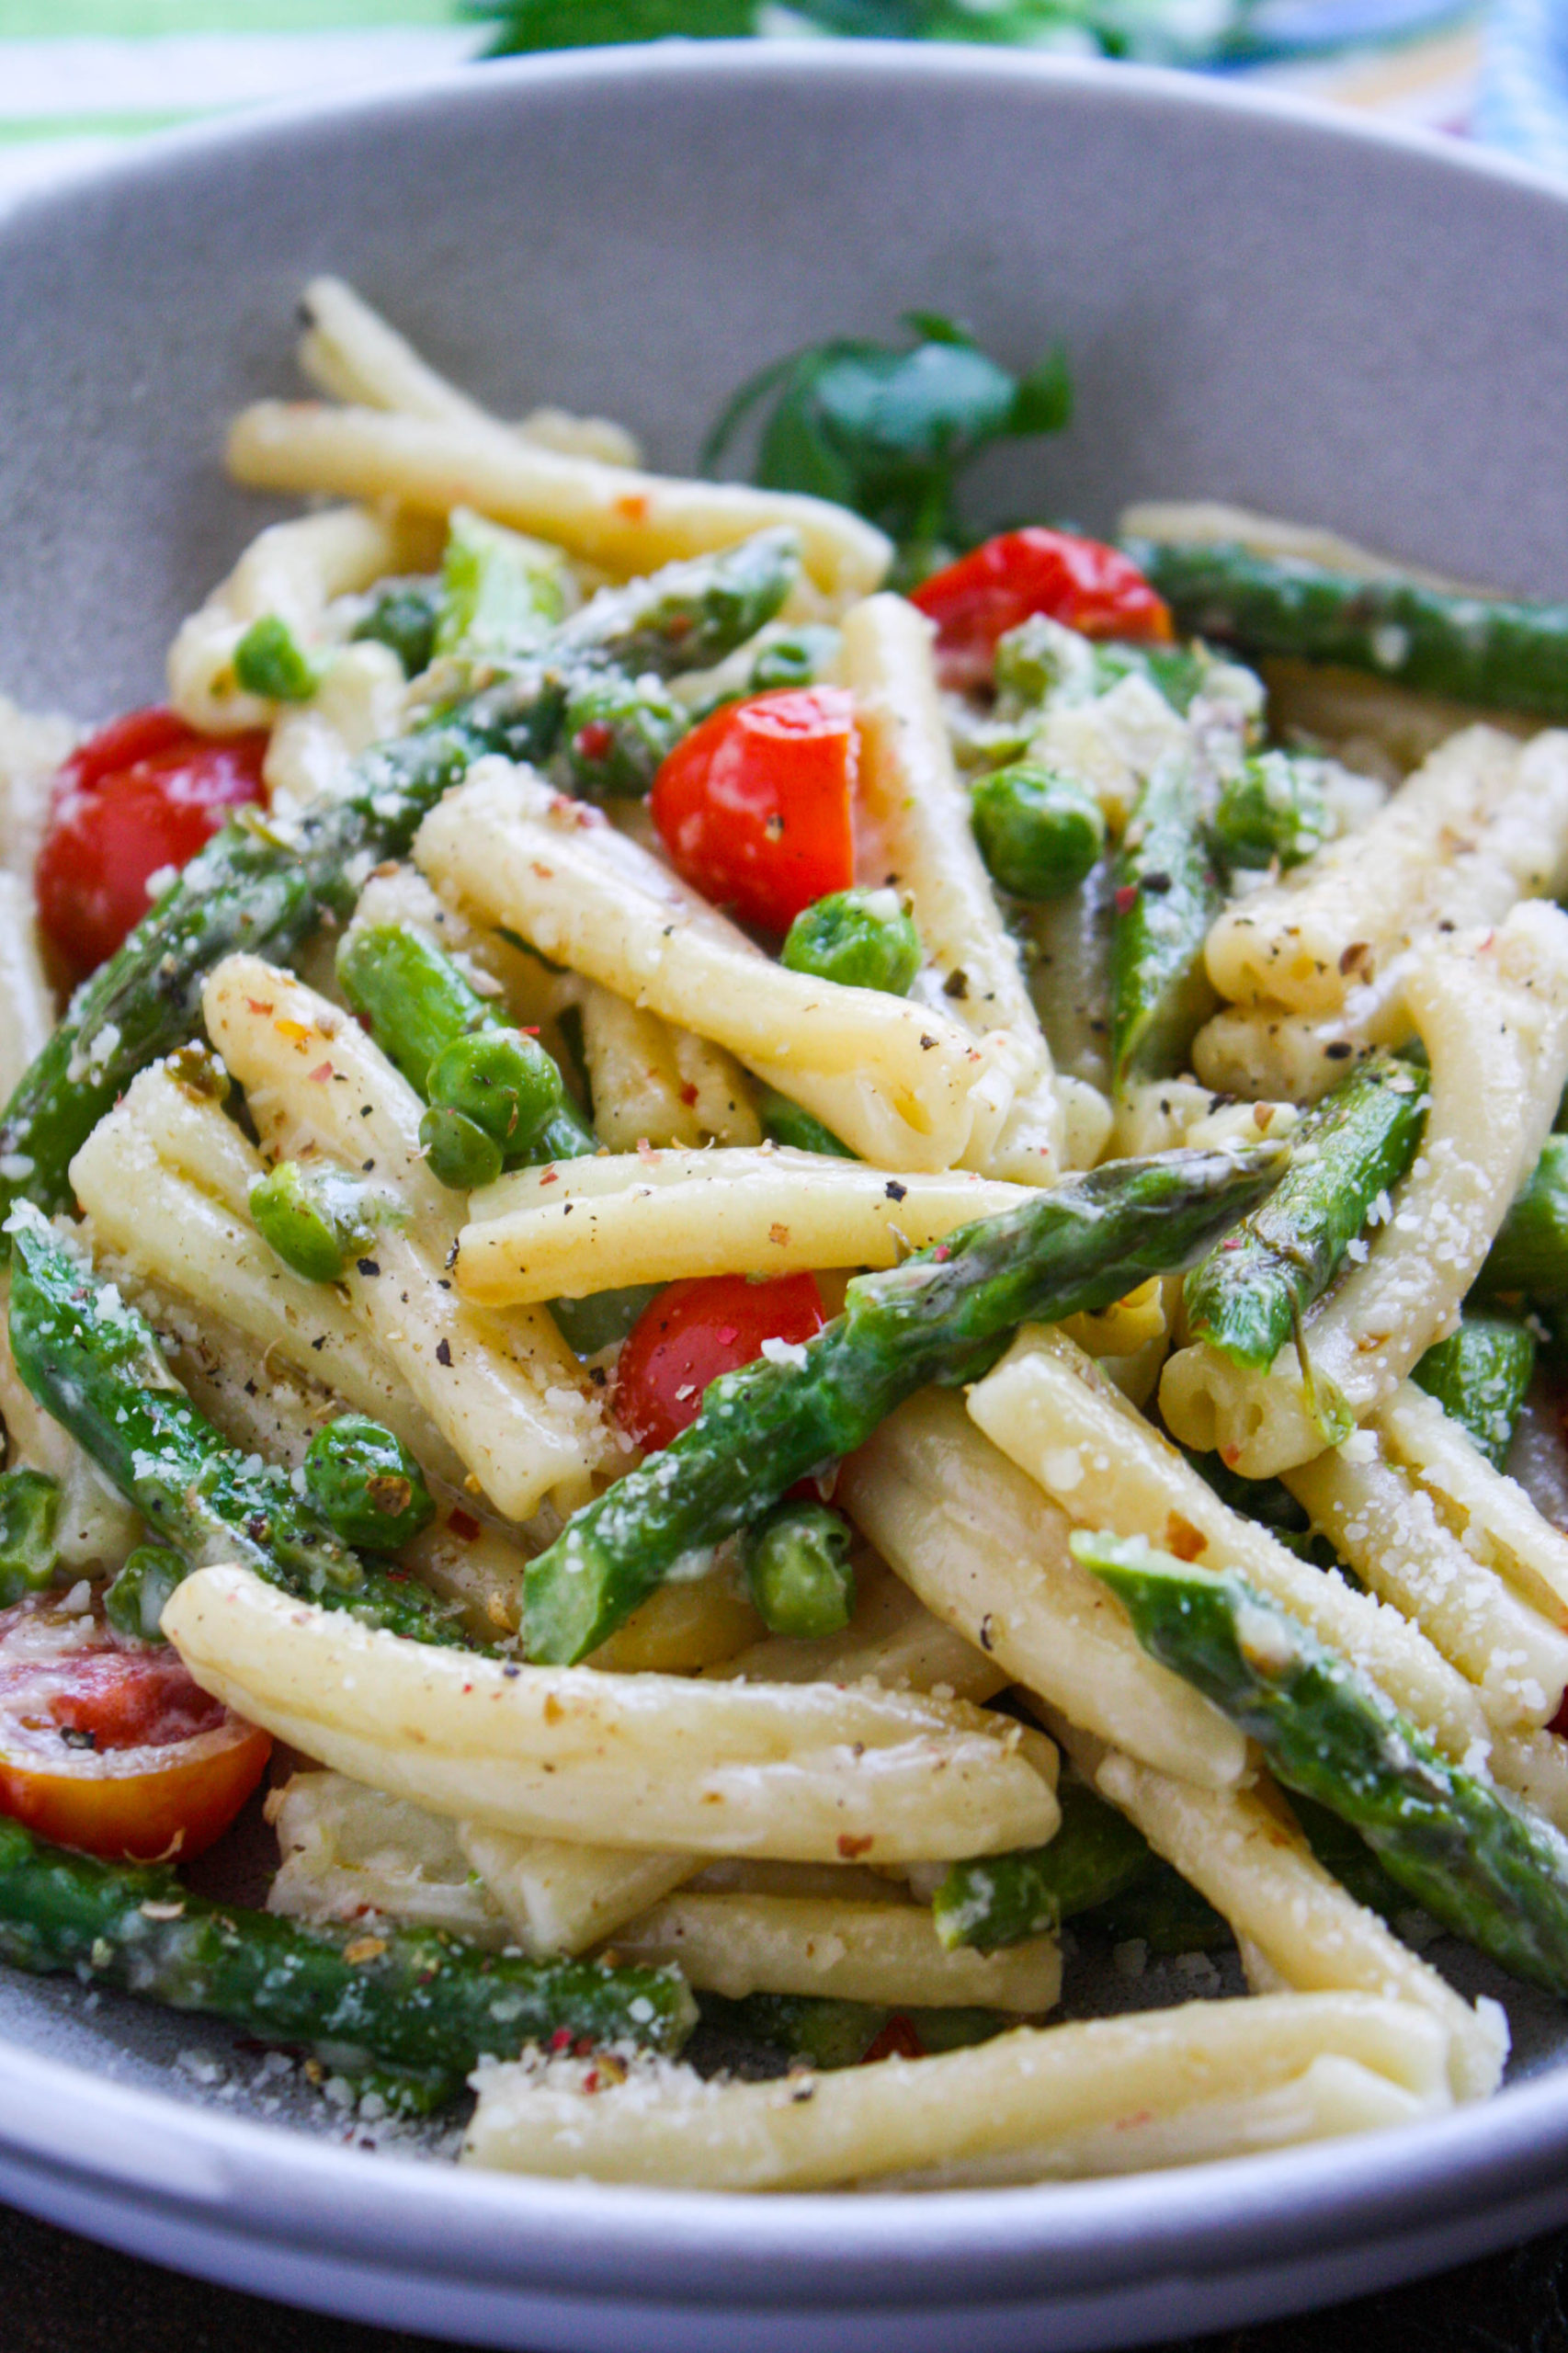 Pasta Primavera in Light Cream Sauce is a delight any night of the week.